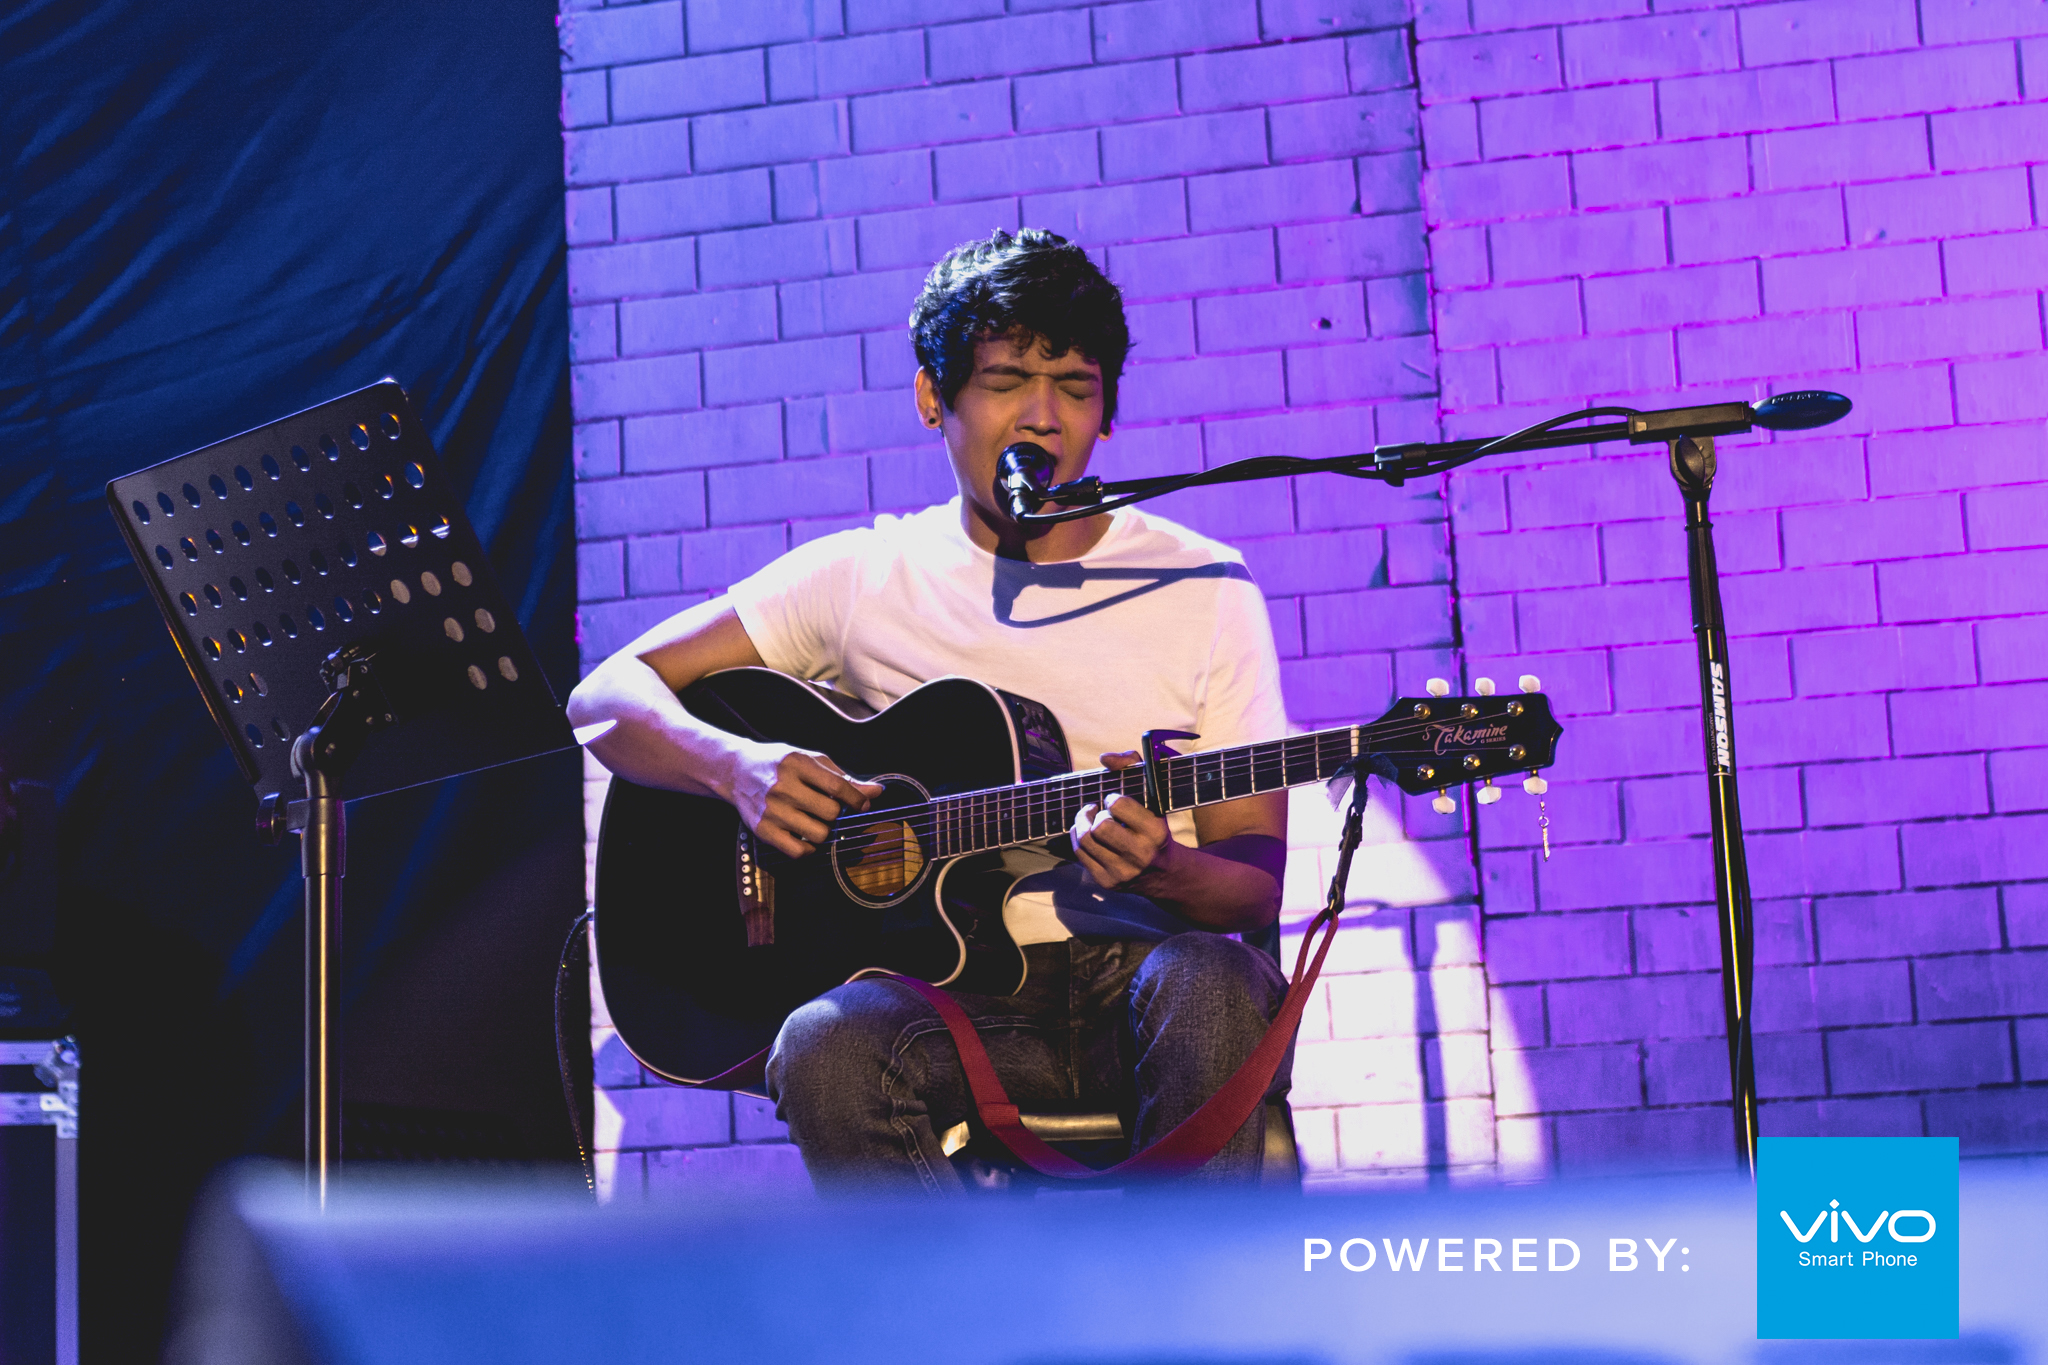 Music unites artists, fans of different genres for one cause